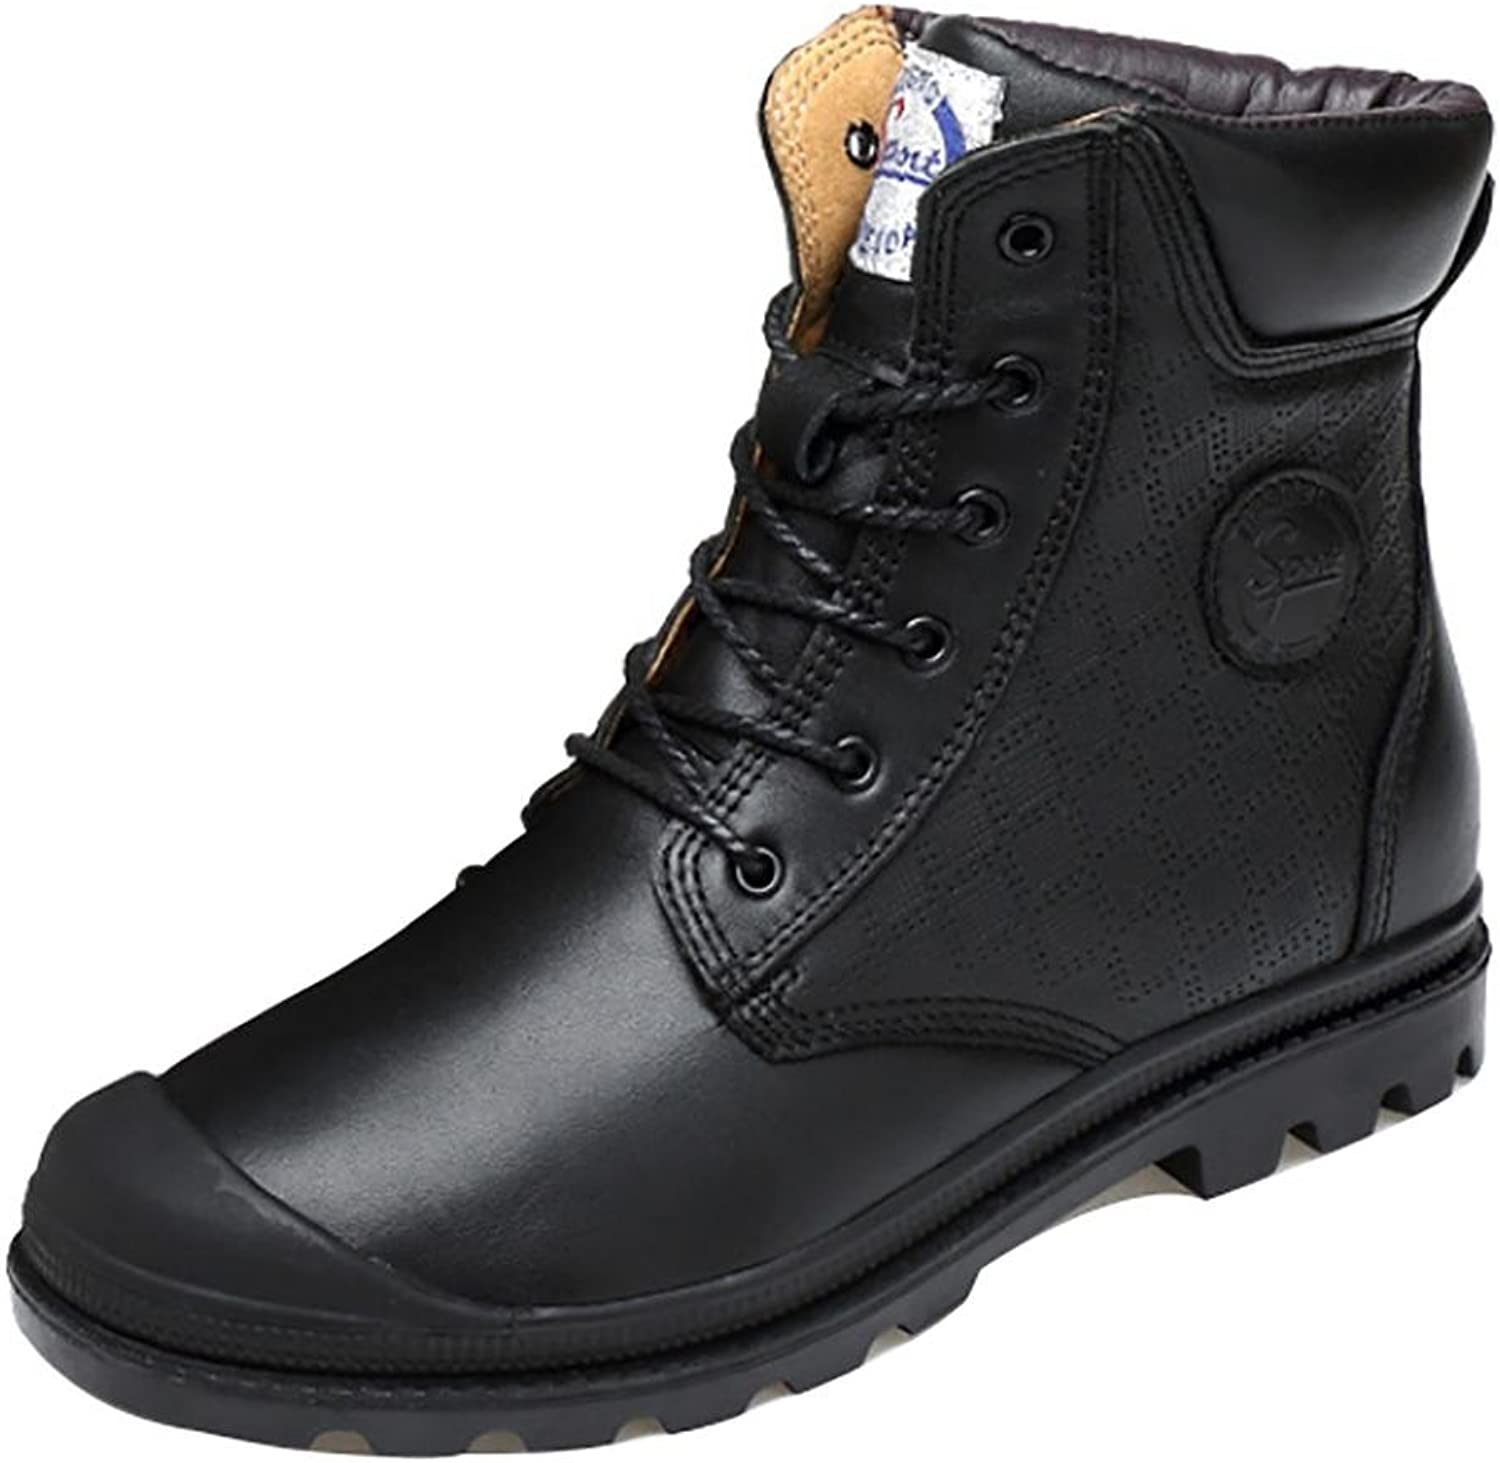 NANXZ Men 's Autumn And Winter Leather Lace Anti-collision High Top Manual Martin Boots Outdoor Leisure